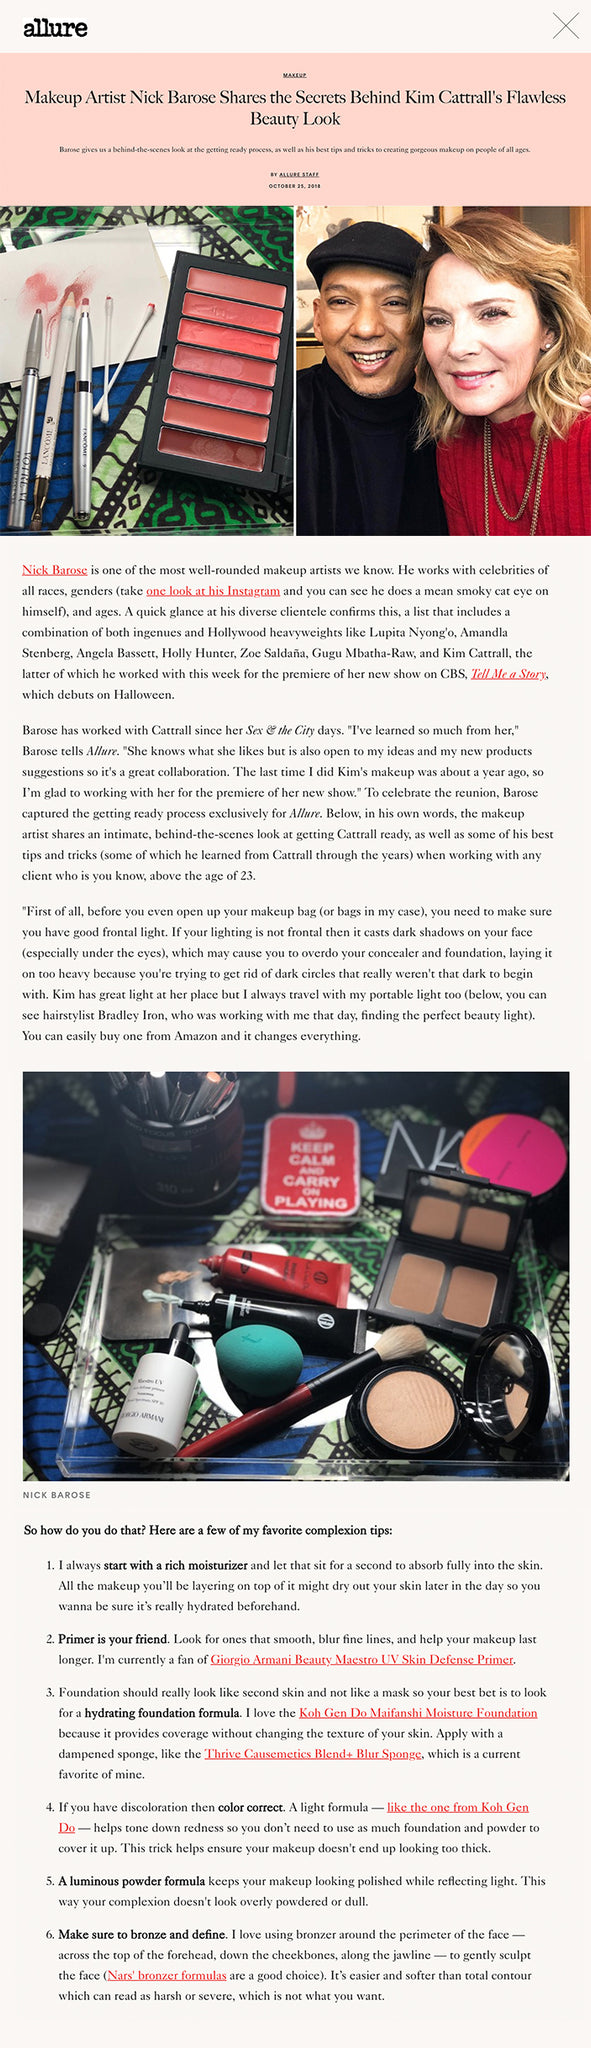 """""""Makeup Artist Nick Barose Shares the Secrets Behind Kim Cattrall's Flawless Beauty Look"""""""